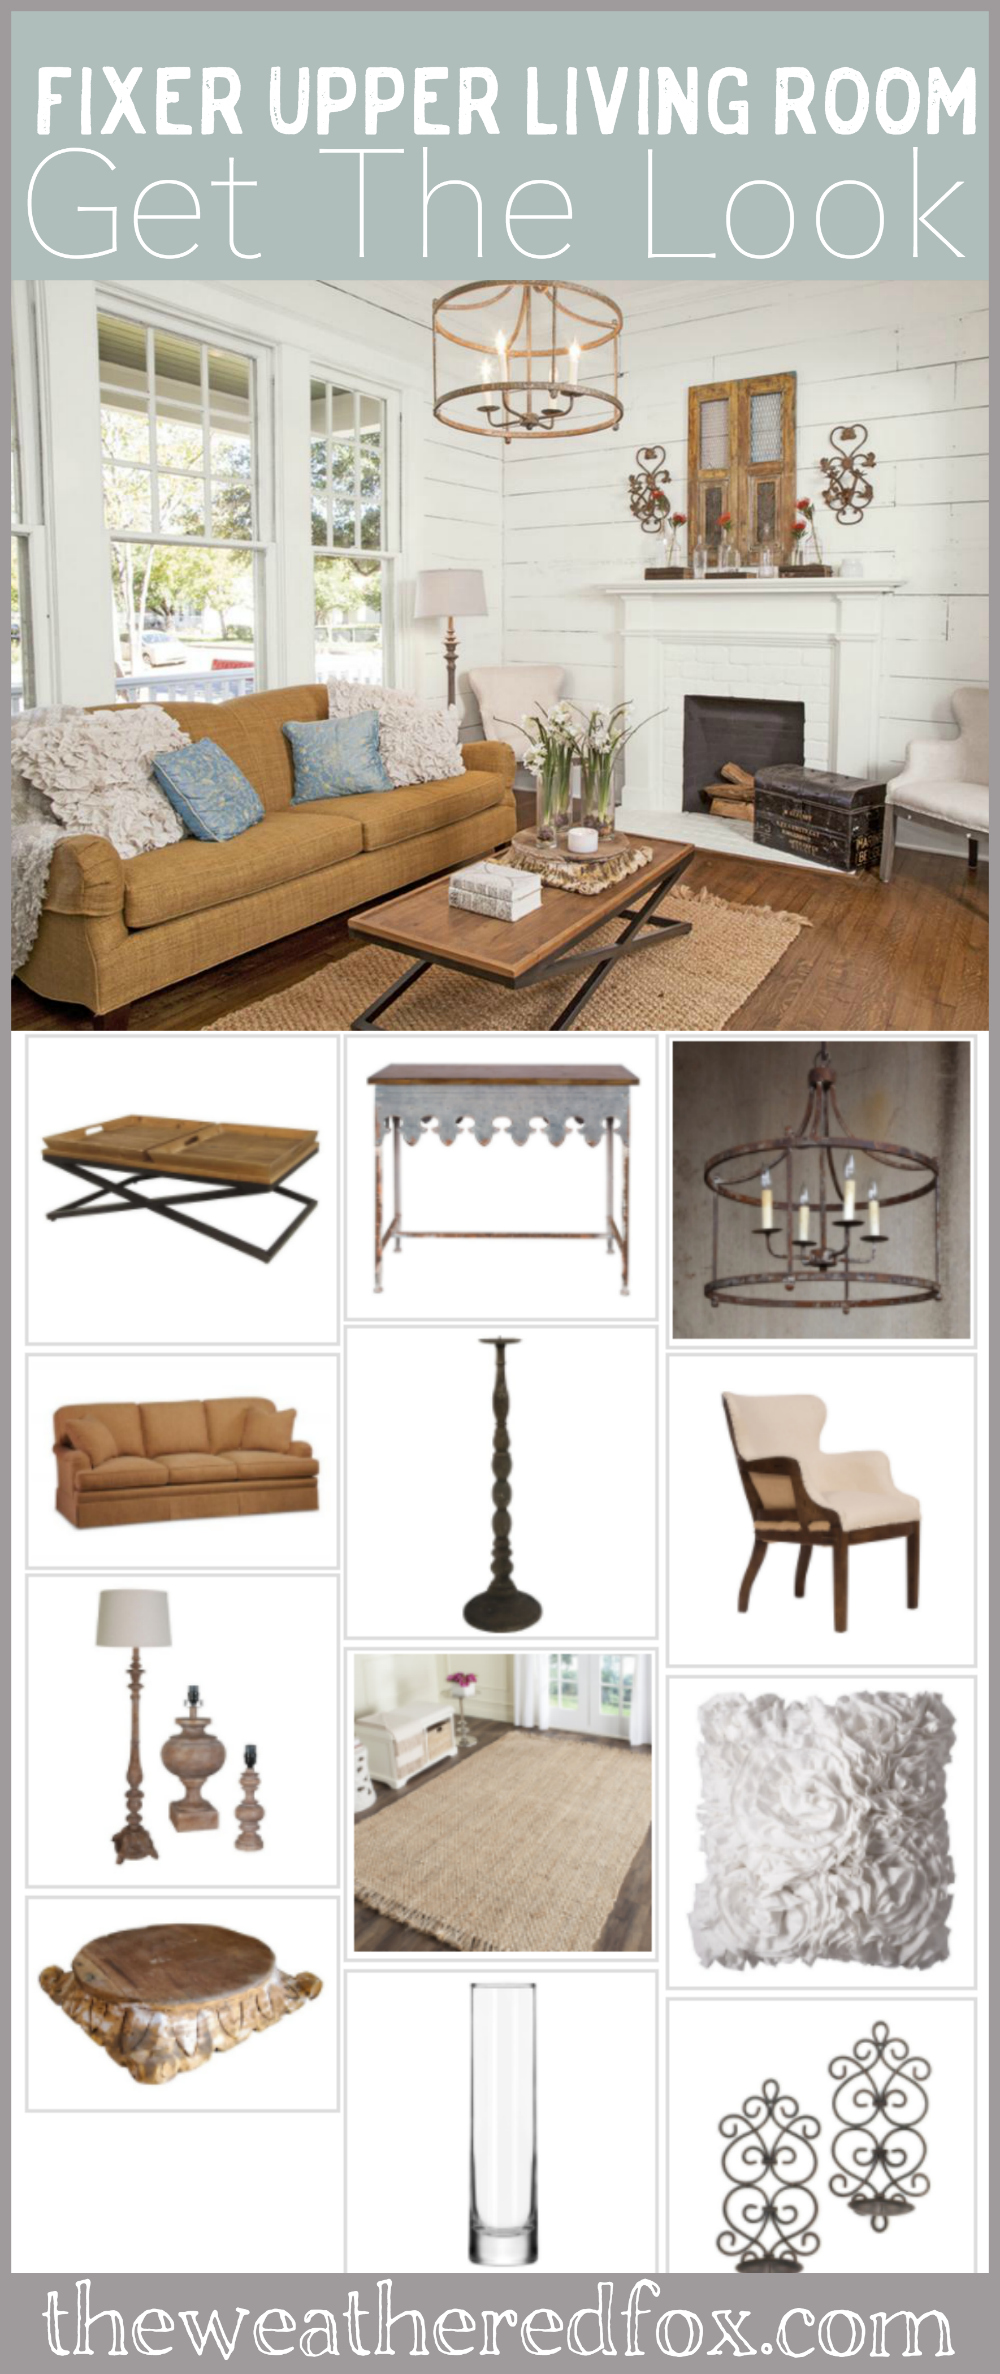 fixer upper season 1 episode 1 sitting room the. Black Bedroom Furniture Sets. Home Design Ideas